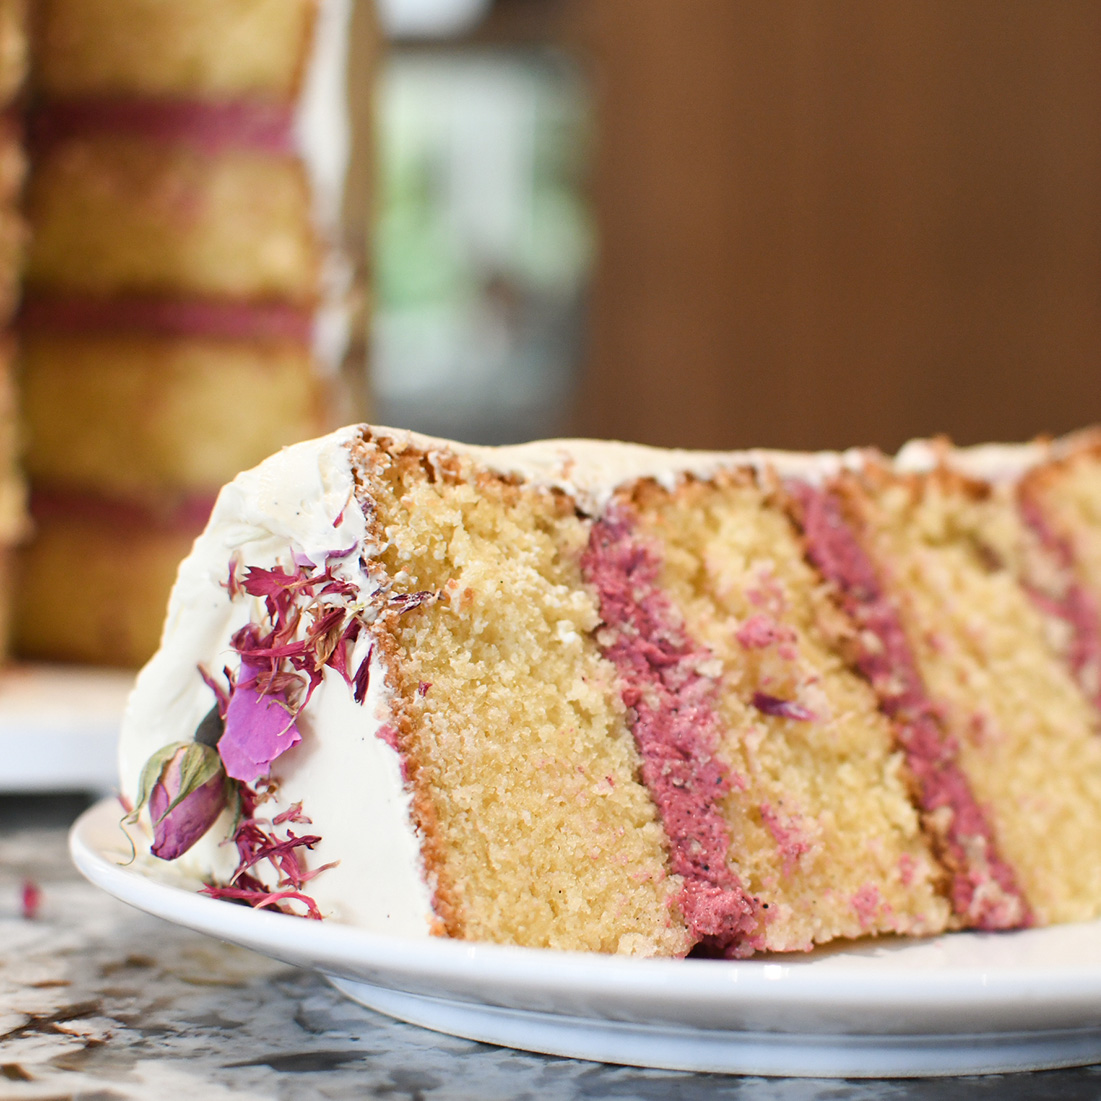 Slice of Wedding Cake with Dried Flower Petals and Pink Icing